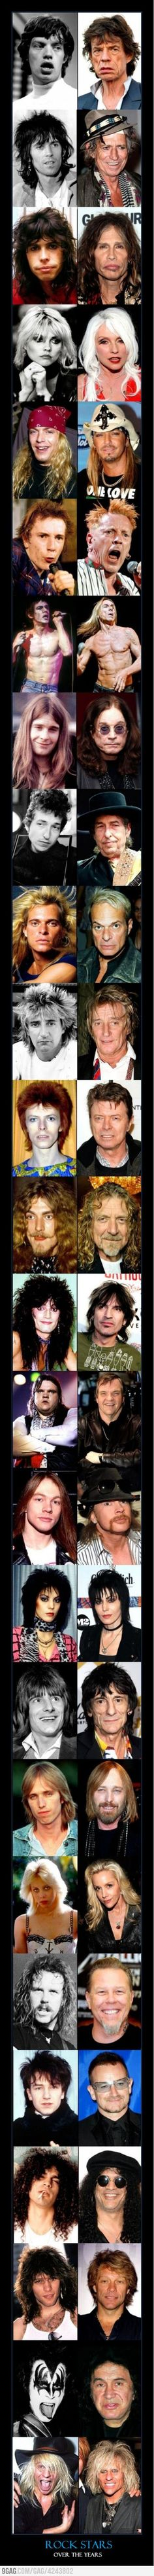 Actually, some of these guys don't look too bad, Joan Jett & Jon Bon jovi look pretty darn good, & some just look like what they are: getting older! Then there are the Rolling Stones...